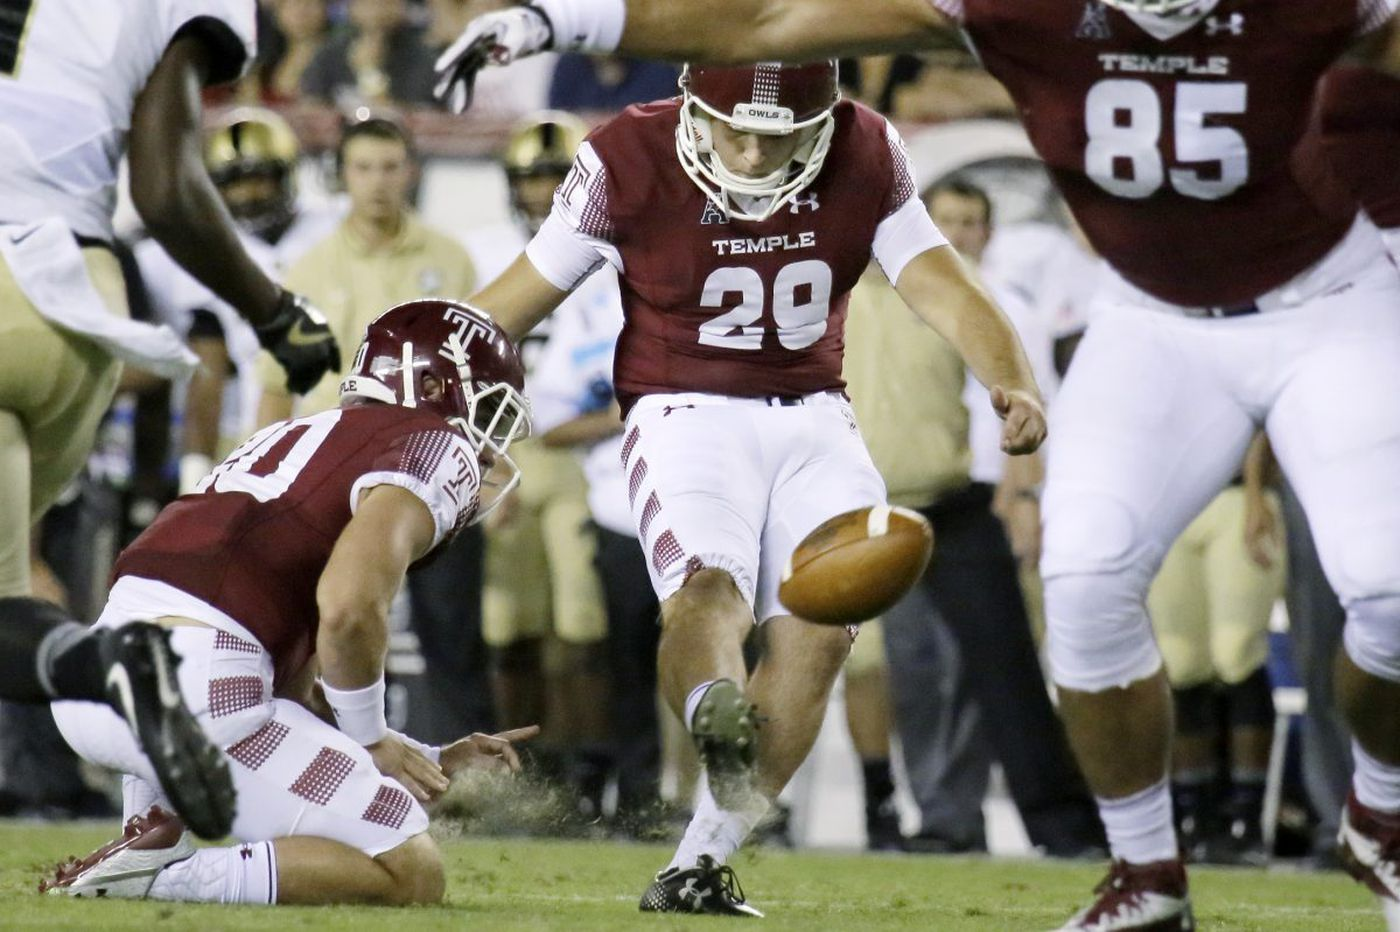 Temple kicking competition between Austin Jones and Aaron Boumerhi is too close to call